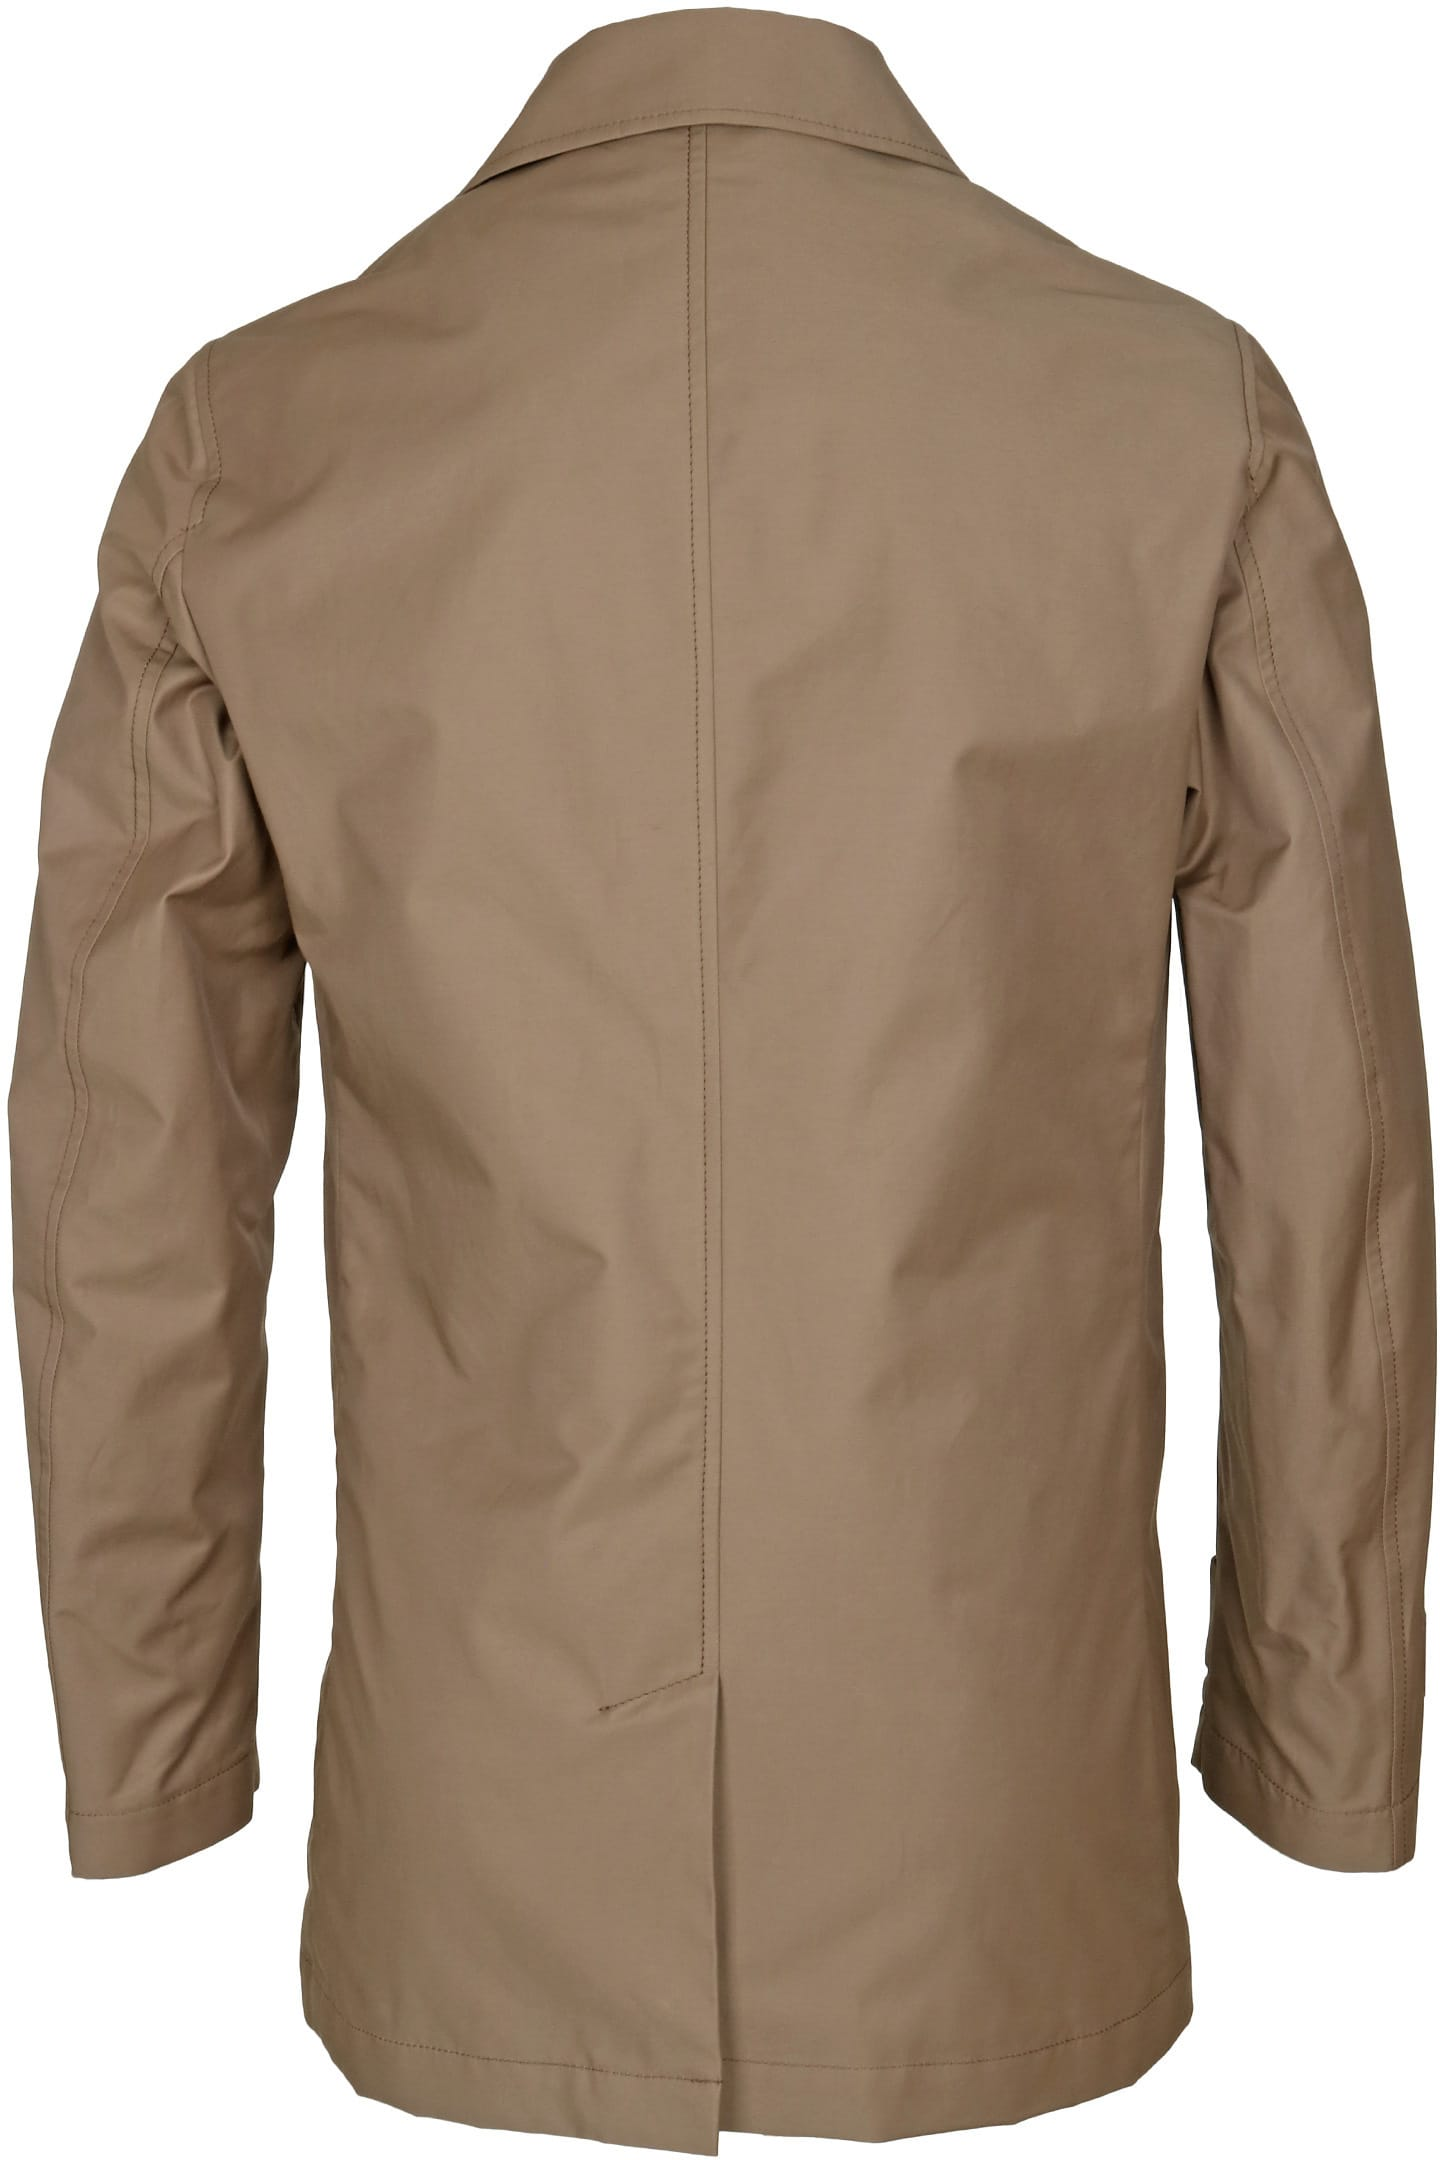 Suitable Coat Rosewood Taupe foto 4